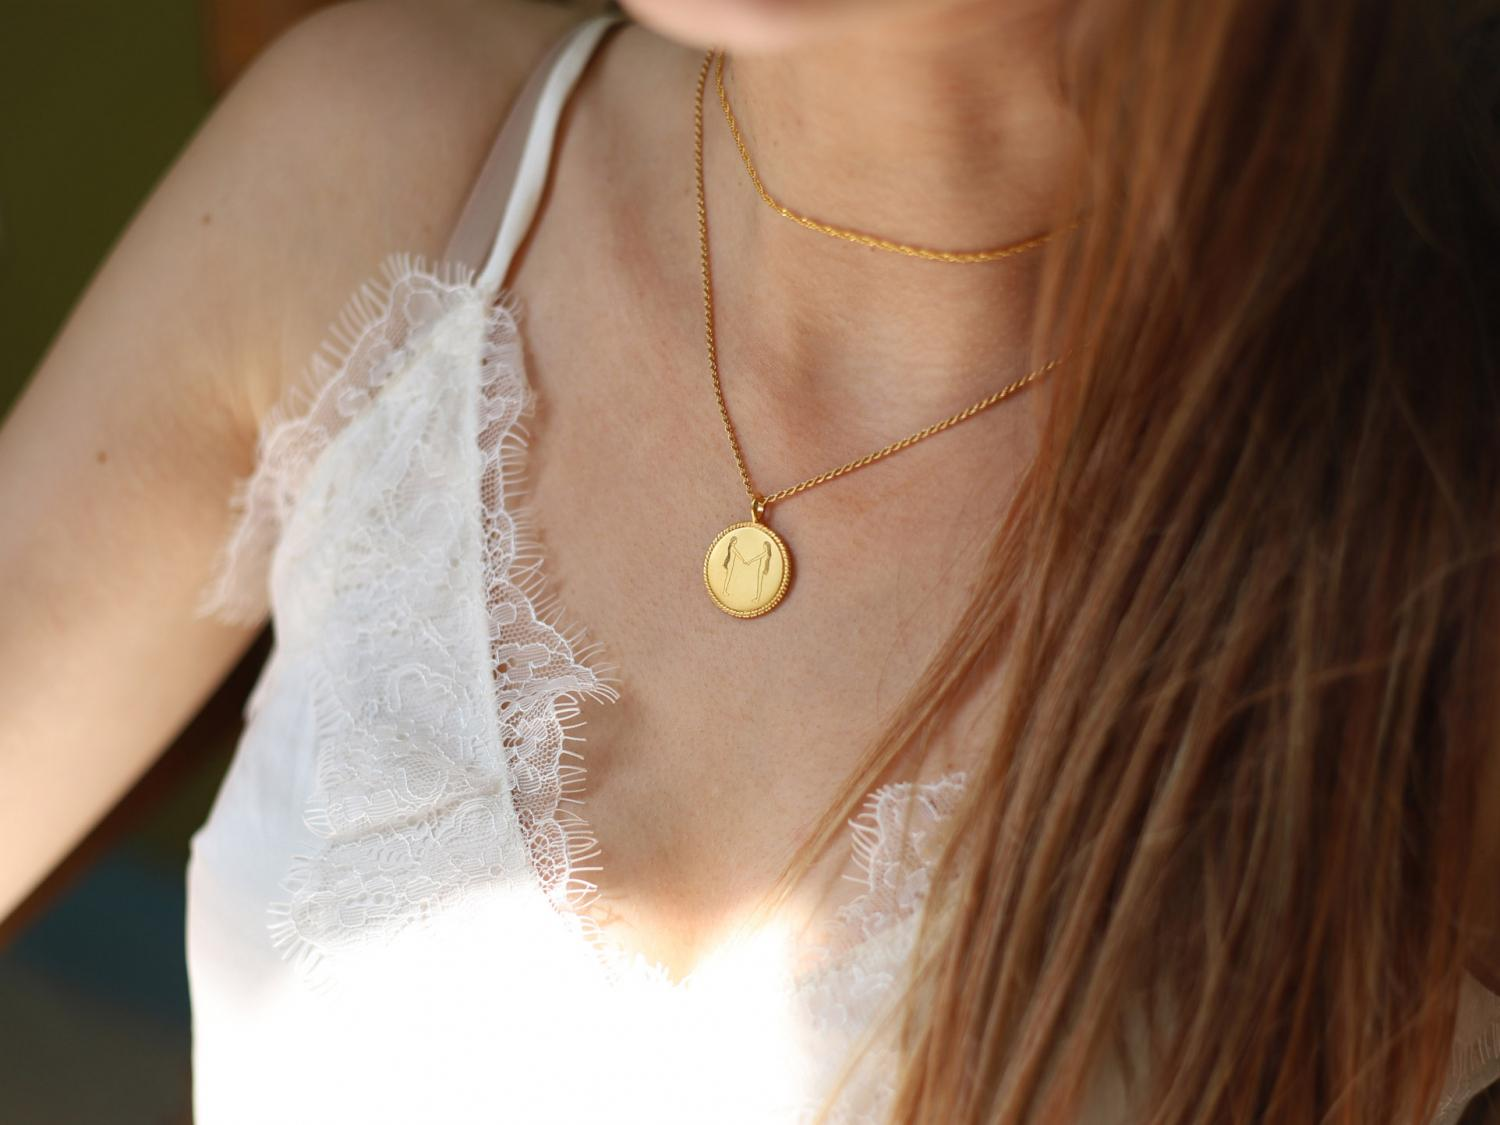 Missoma Body Language M Initial Necklace By Fee Greening